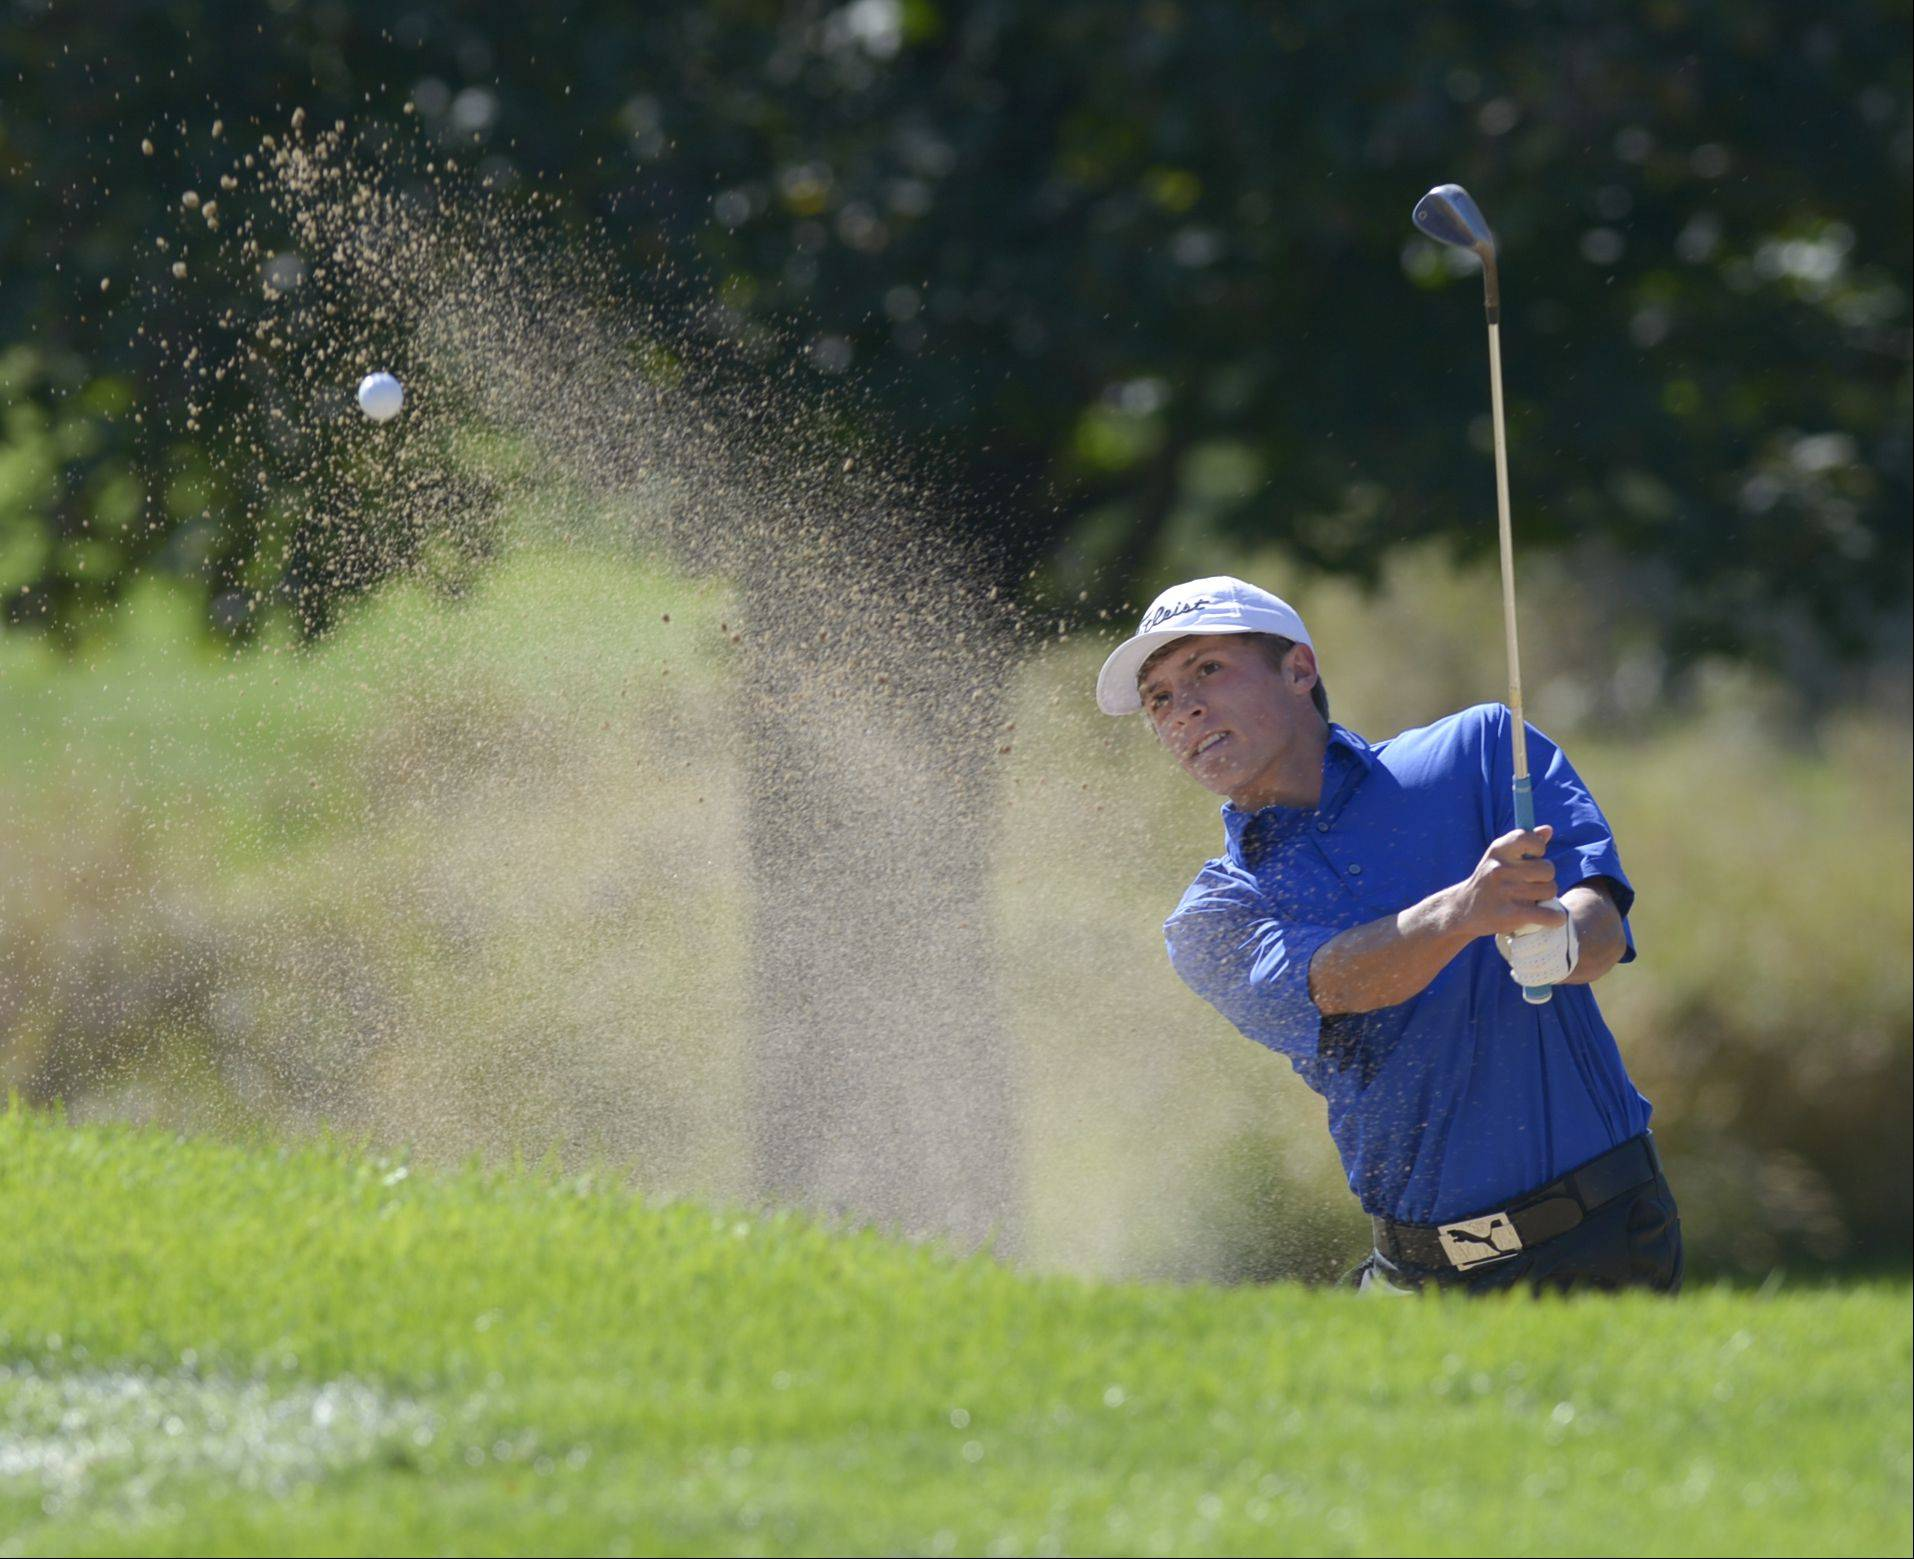 Mark Black/mblack@dailyherald.comMatt Walsh of Lyons Township chips out of the sand during the Class 3A Naperville Central sectional boys golf tournament, Monday at Springbrook Golf Course in Naperville.